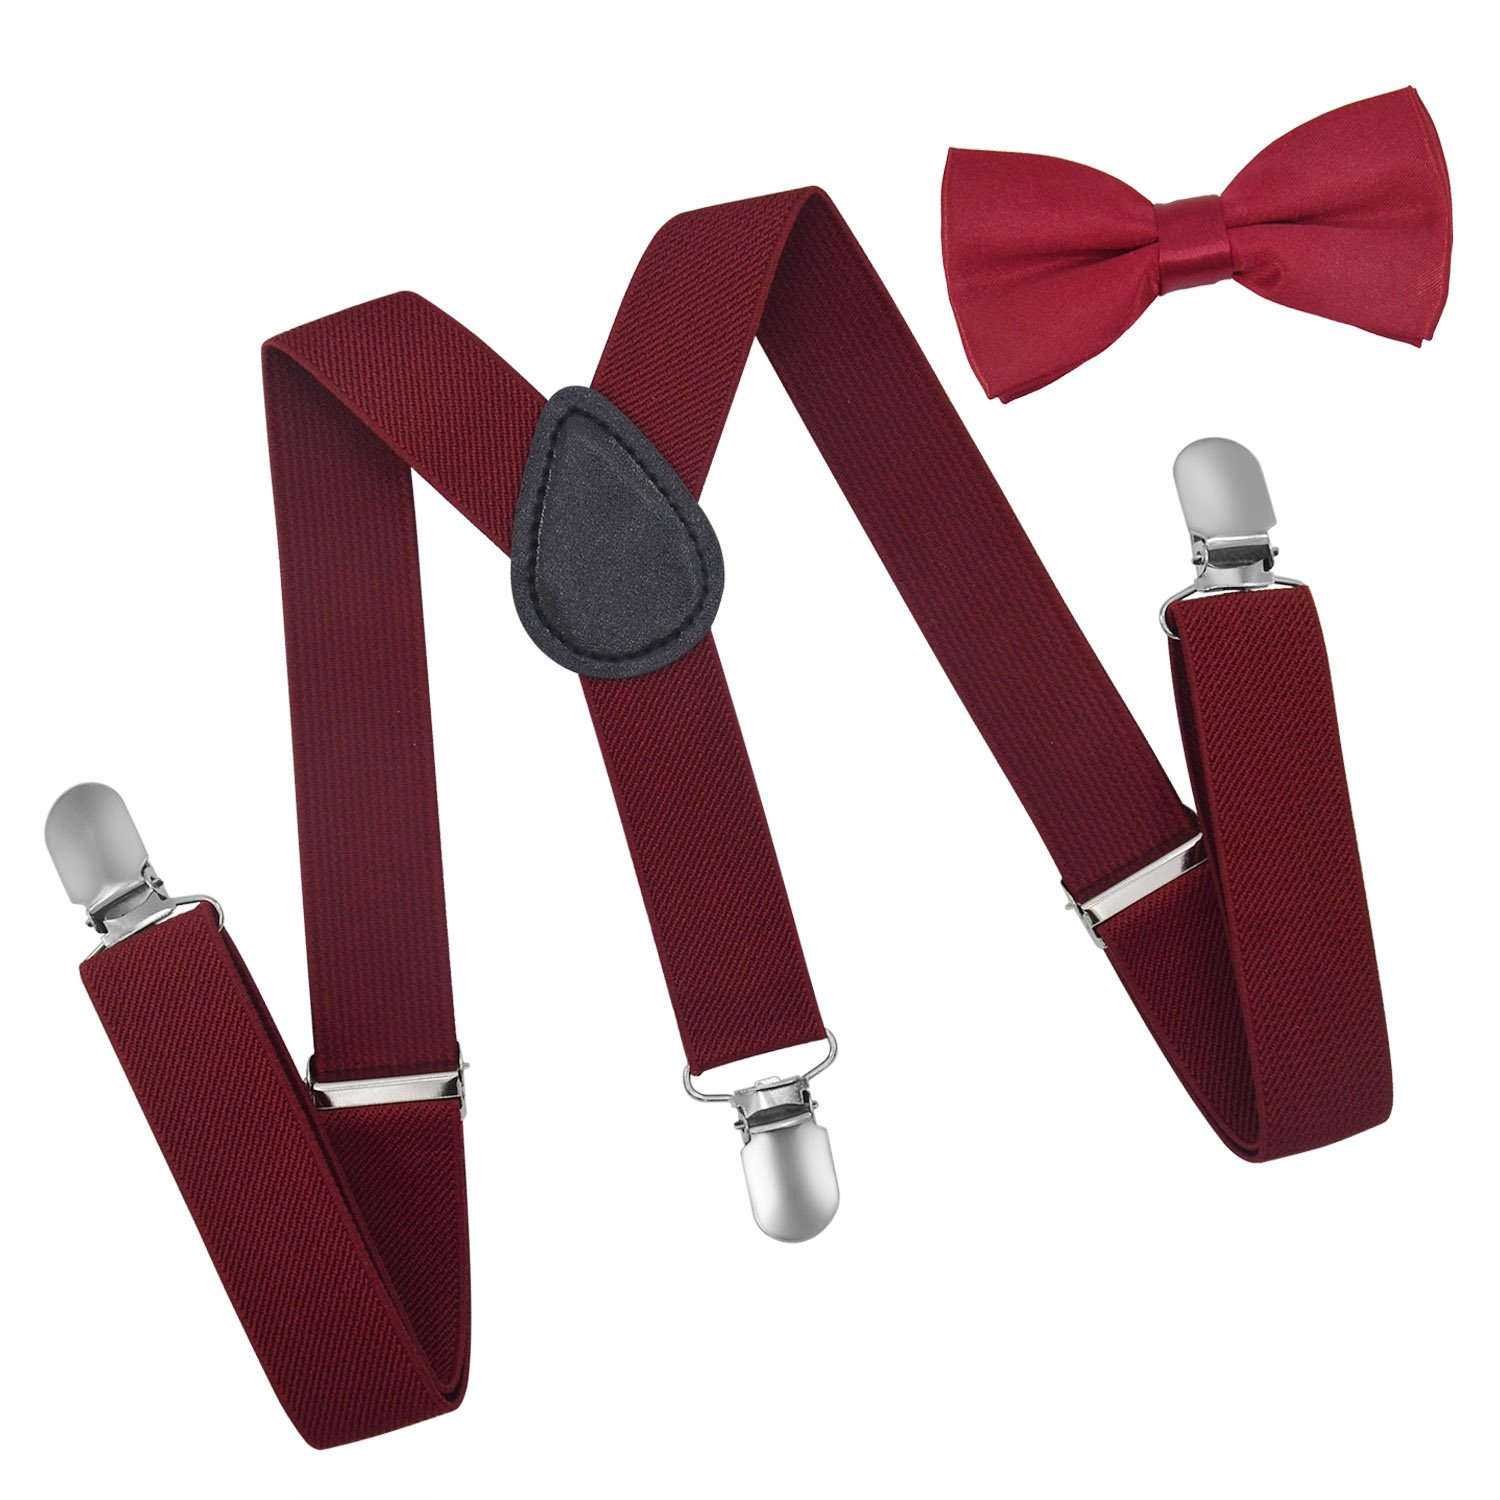 Brooben Child Kids Suspenders Bowtie Set - Adjustable Length Suspender with Bow Tie Set for Boys and Girls SPBT1-RoseRed